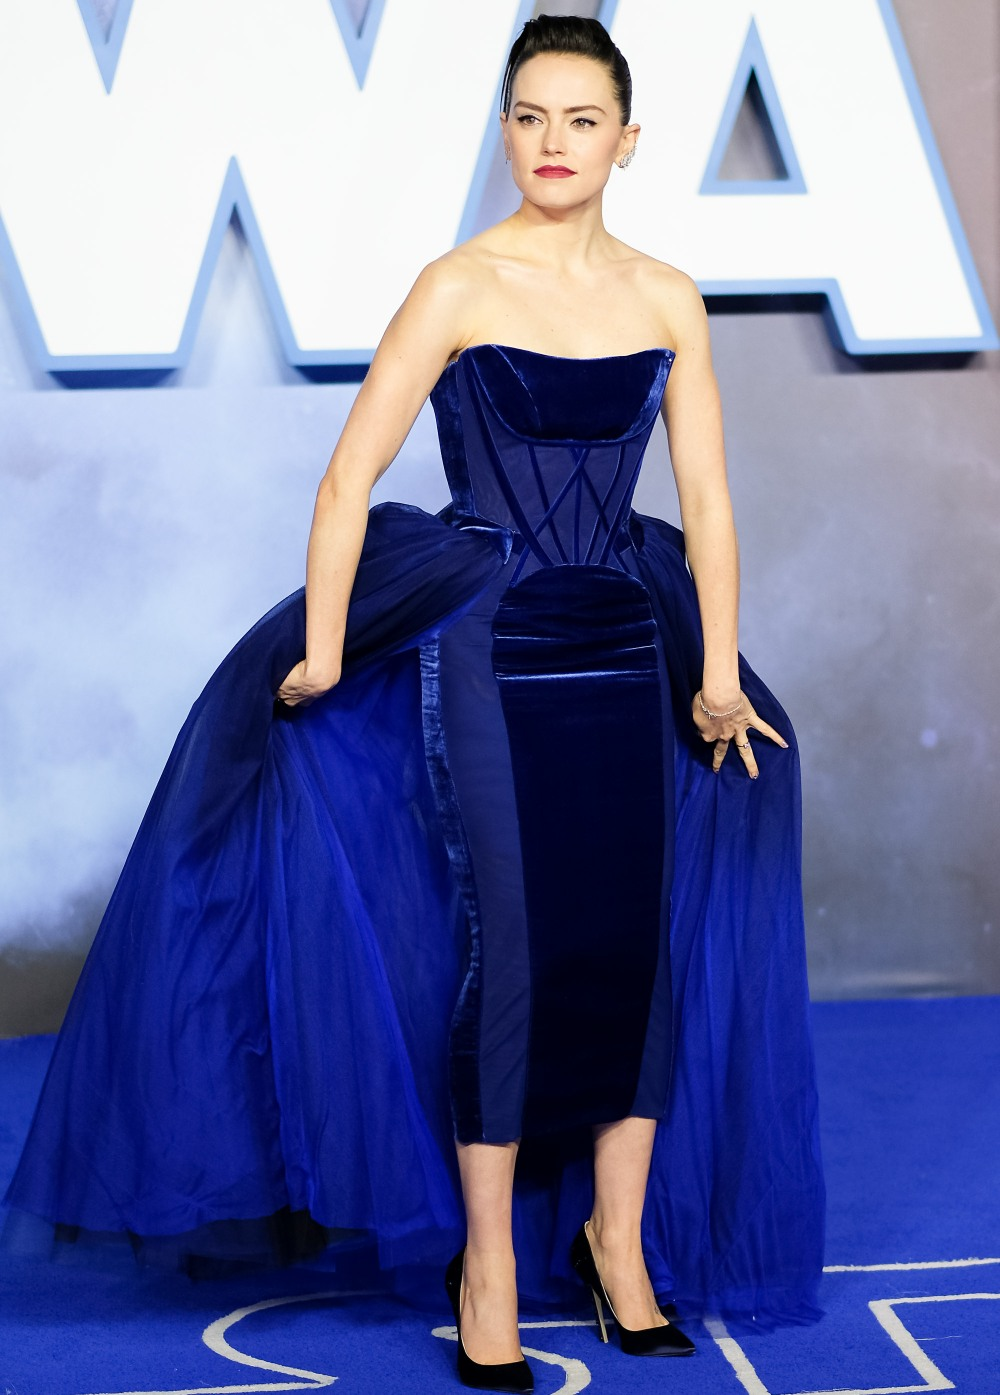 Daisy Ridley poses at European Premier of Star Wars: The Rise of Skywalker on Wednesday 18 December 2019